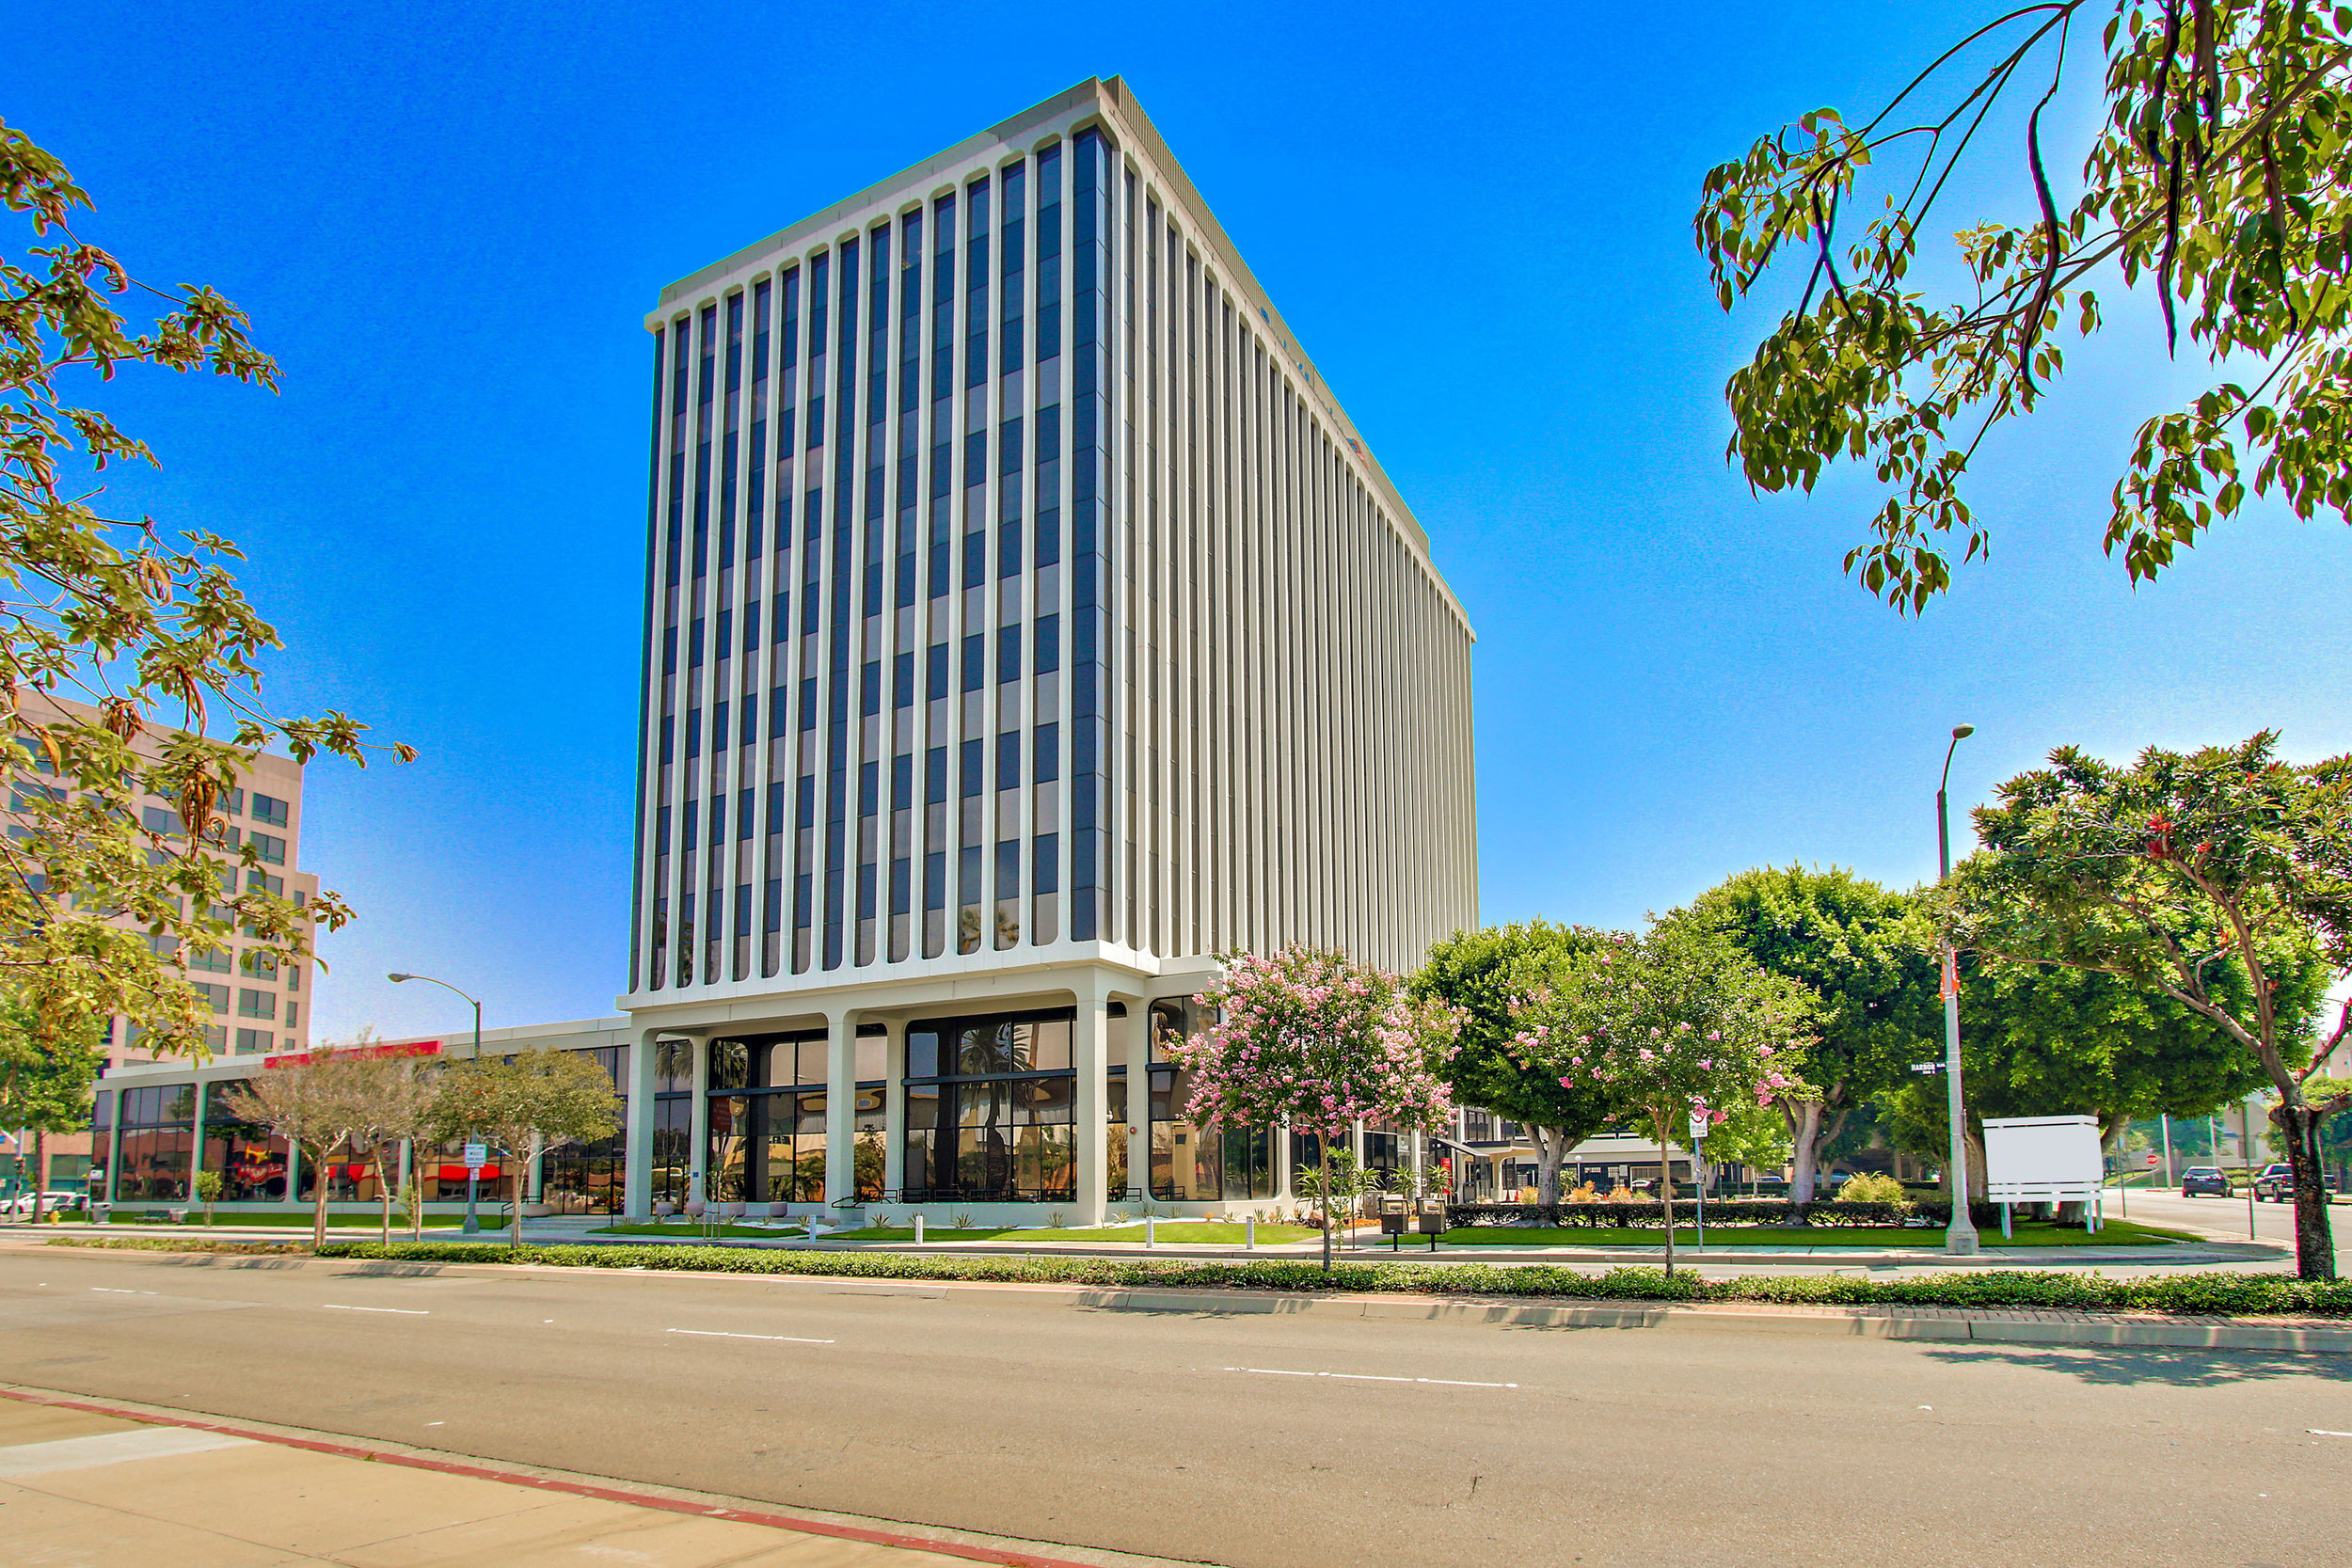 The 300, Bank of America Tower of Anaheim